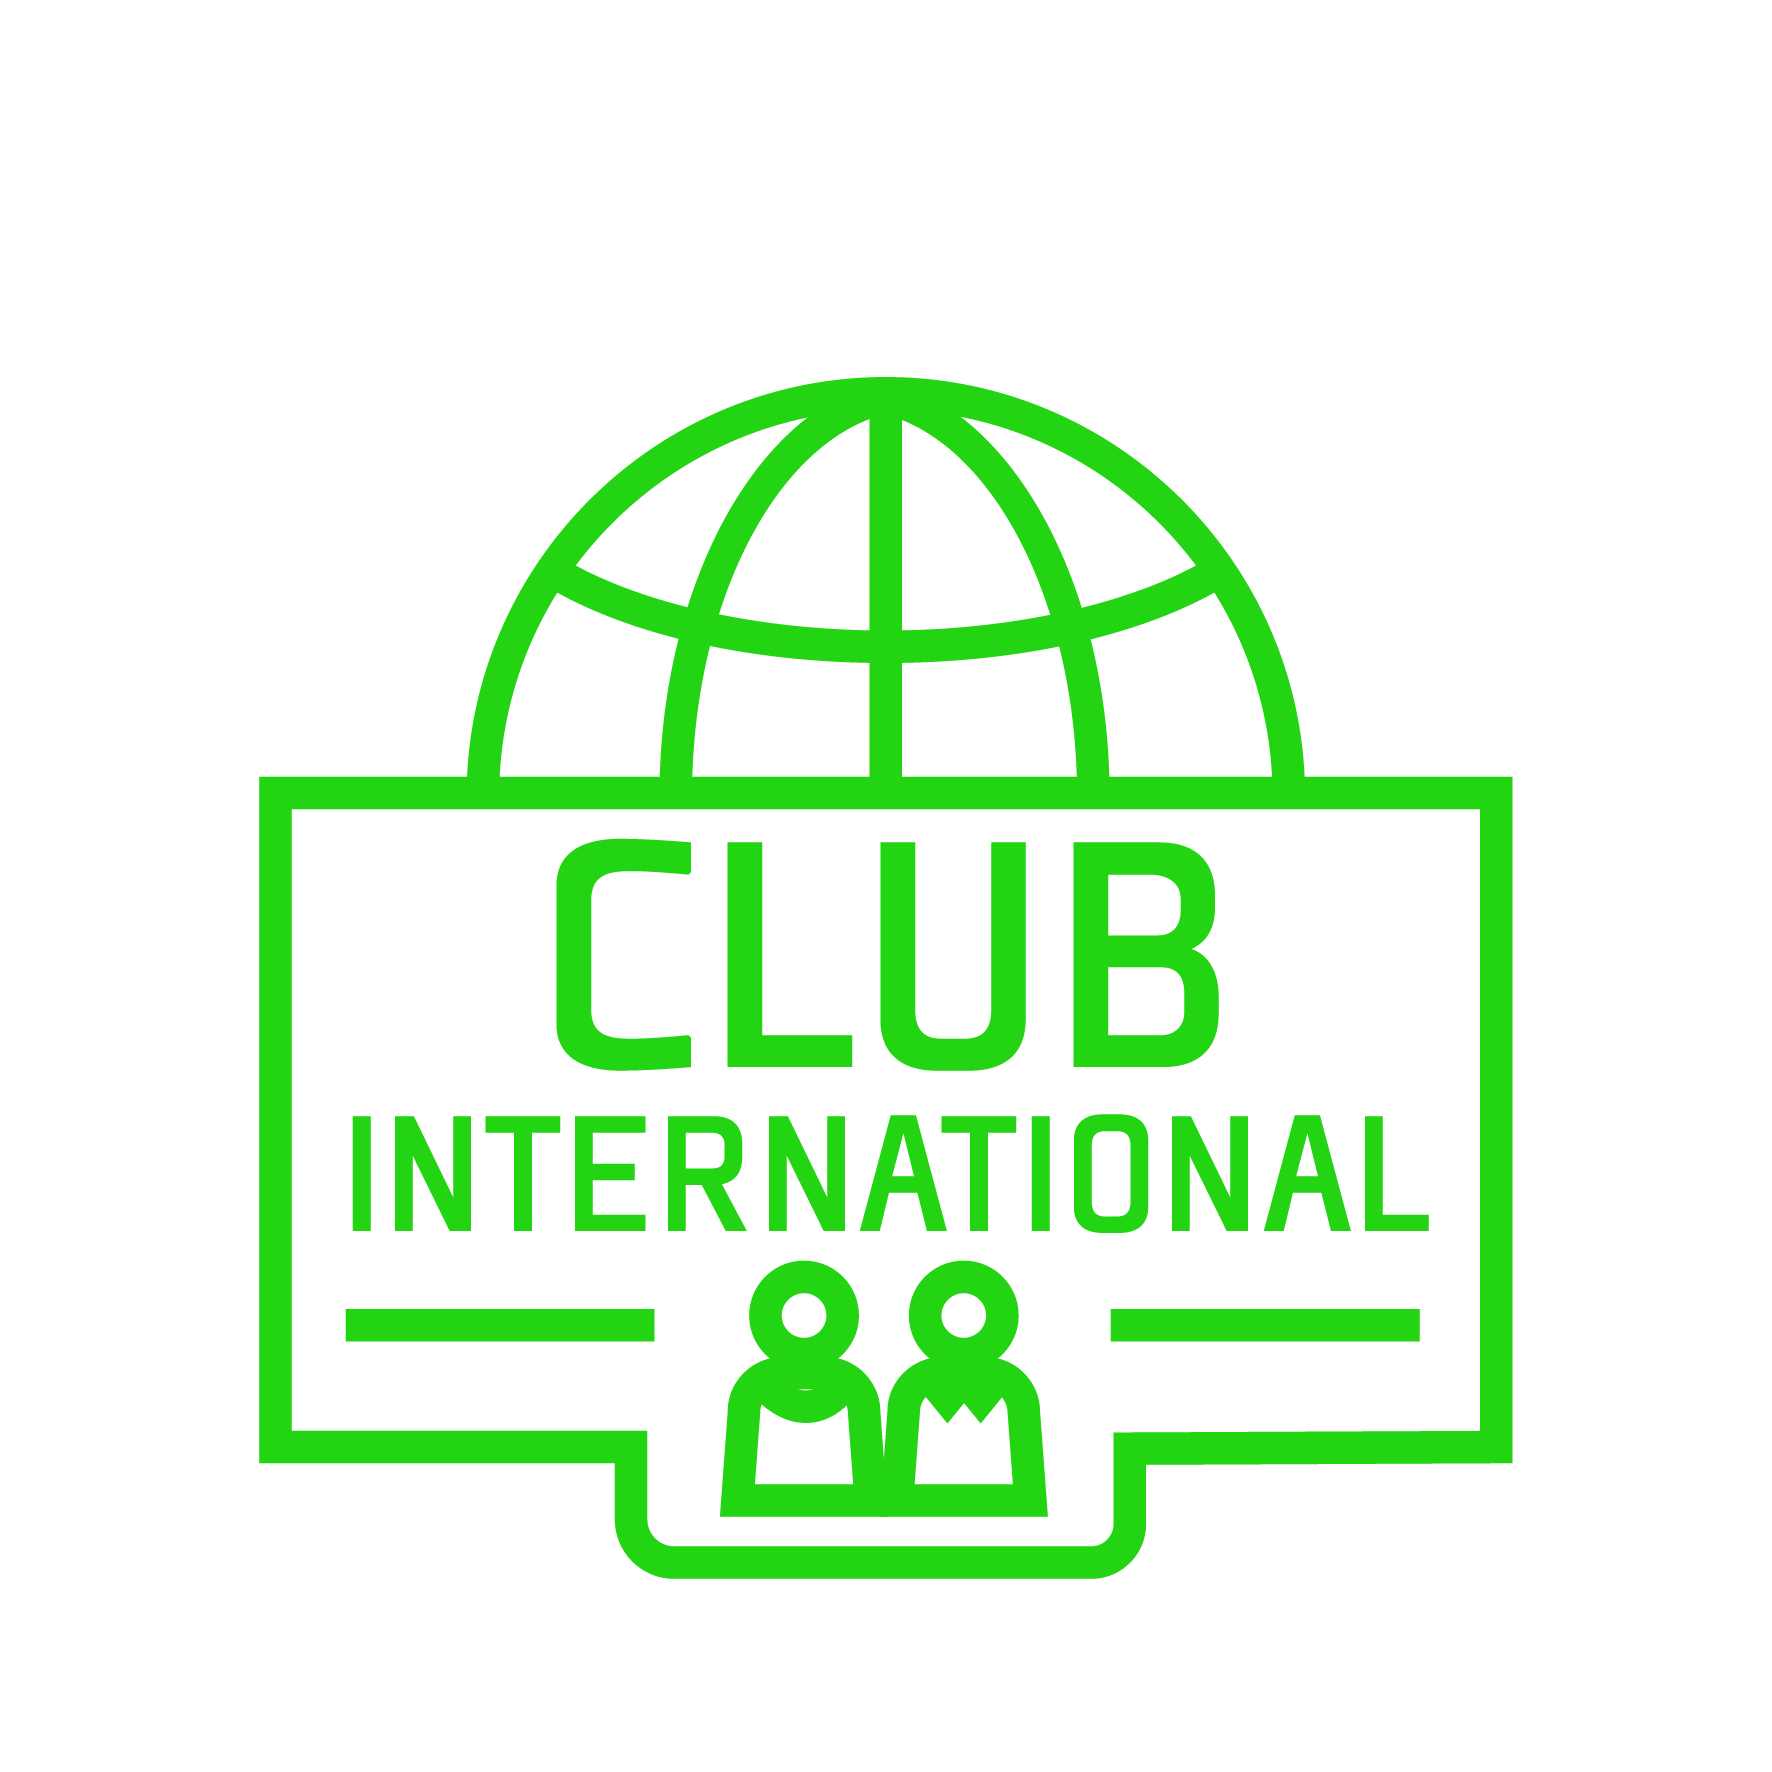 Club international SPACE 2019